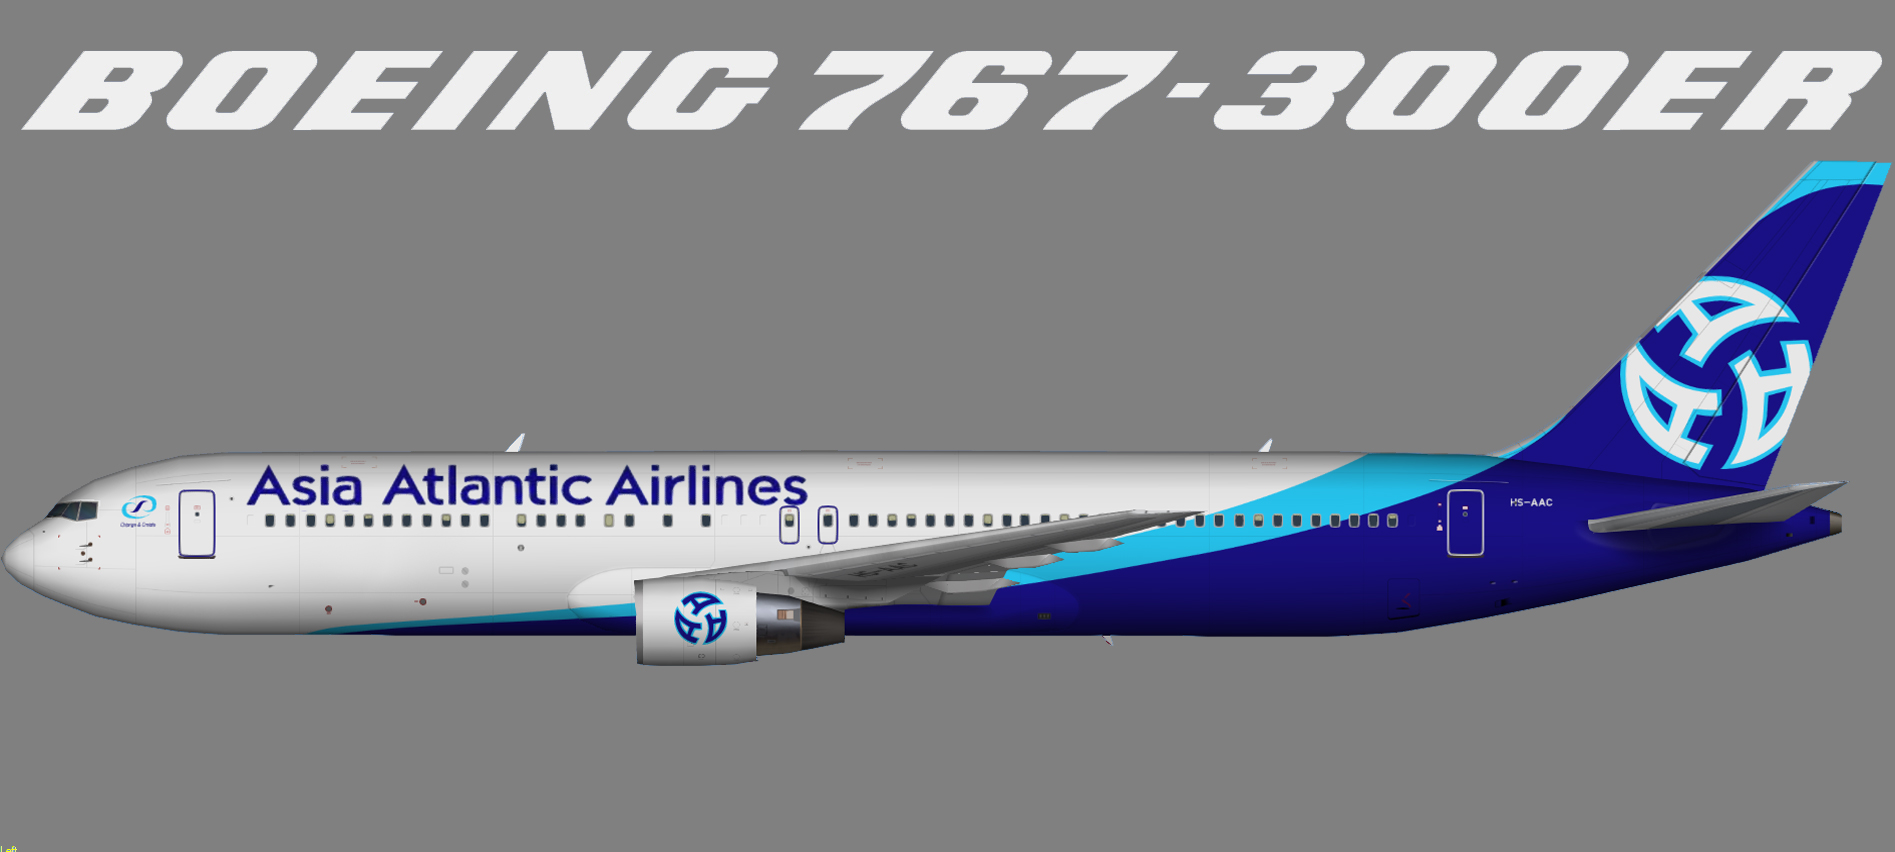 boeing 767 concept to prodution While boeing focuses on new opportunities and challenges, an old favorite looks more likely than ever to return to everett boeing is expected to soon decide whether to resume production of 767 passenger jets for airlines that don't need or want dreamliners.